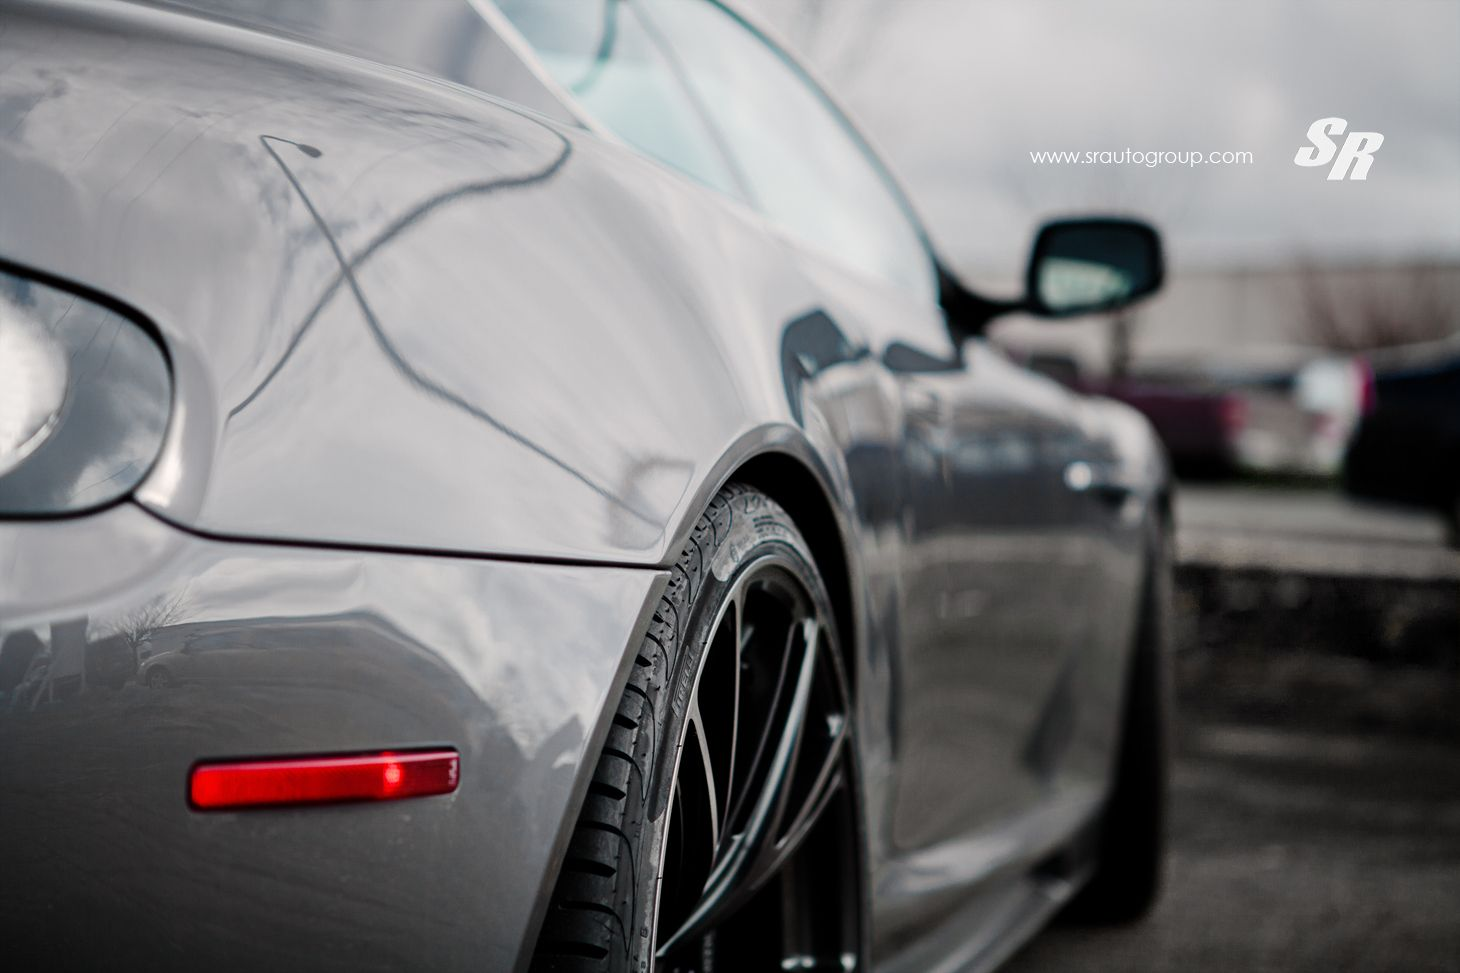 Custom Cars and More Tuning Projects: Rhapsody in Gray - Aston Martin DBS - SR AutoGroup | Custom Cars and More